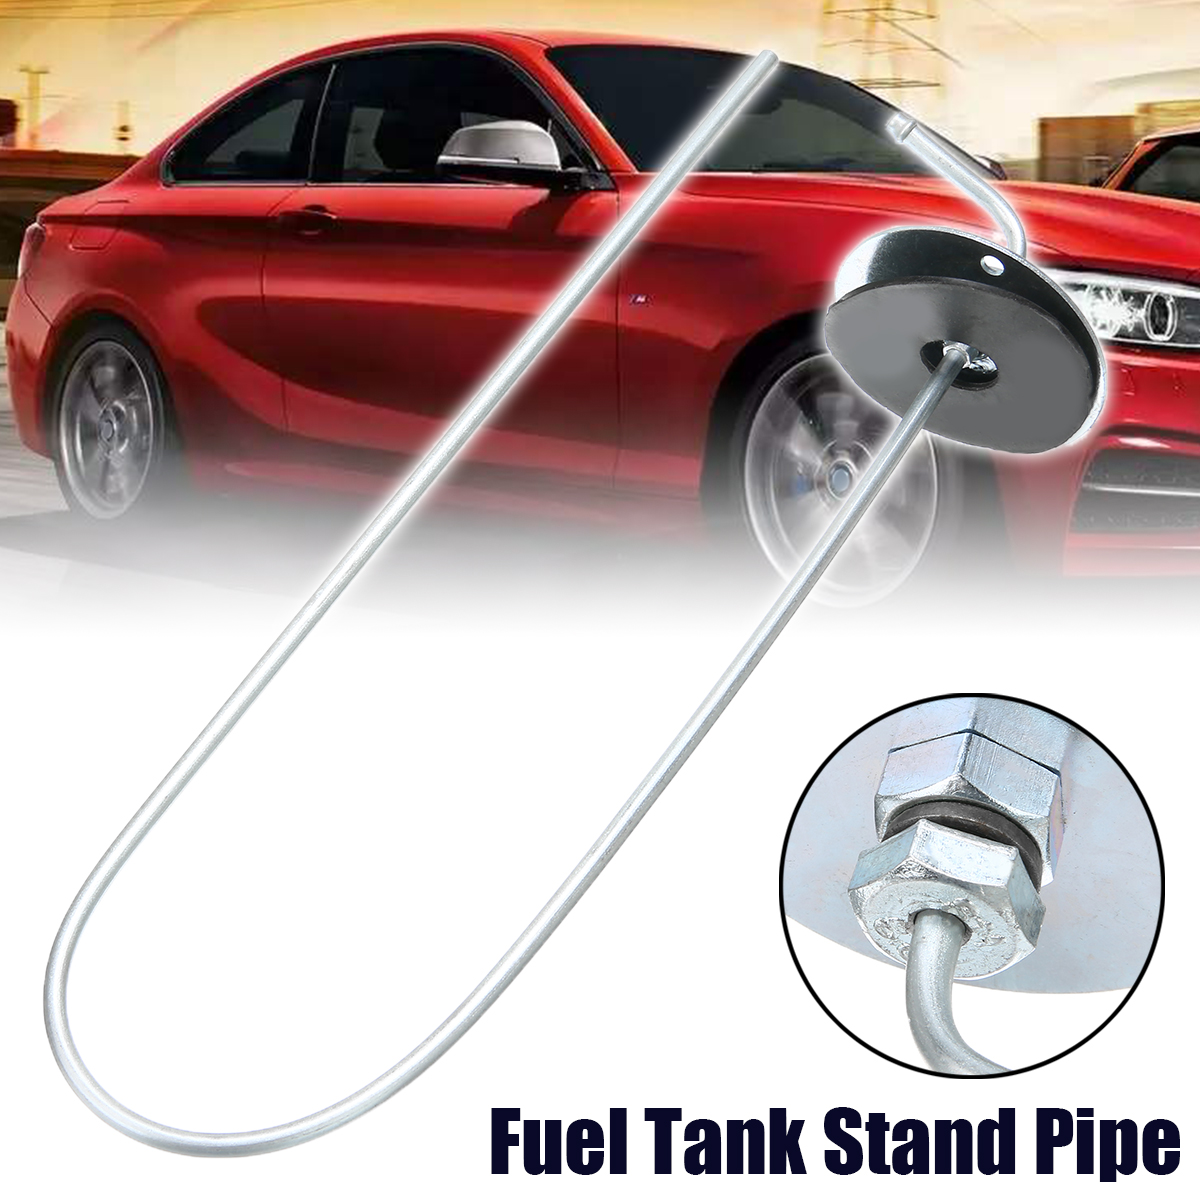 New Arrival 1pc Metal & Rubber Car Vehicle Fuel Tank Stand Pipe For Heaters 600mm Long OD 5mm